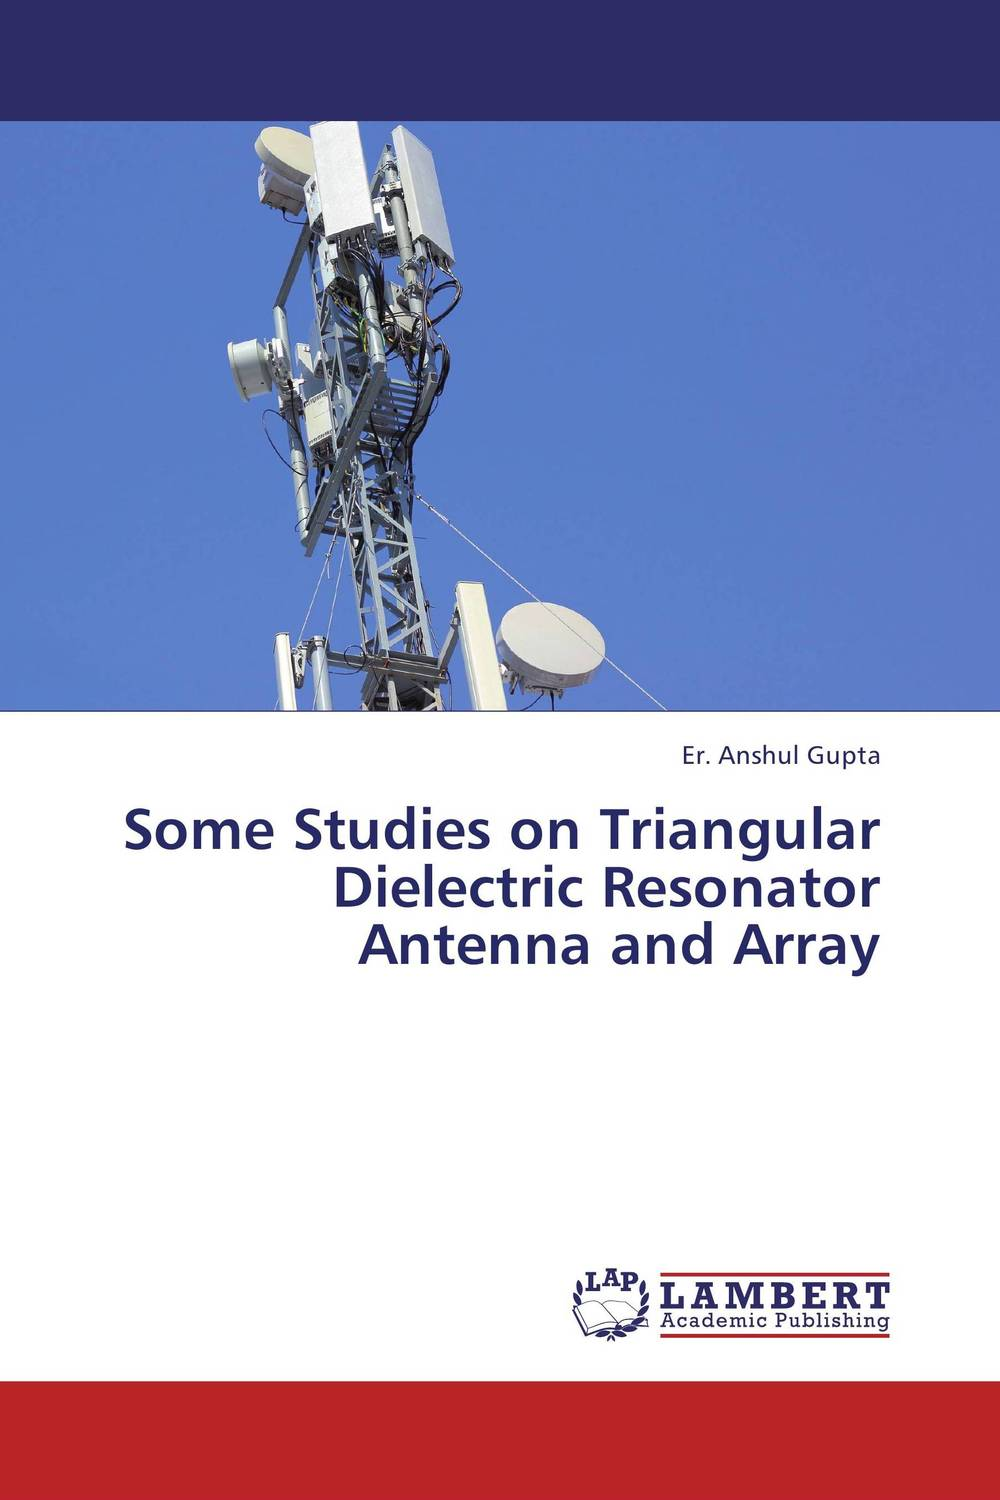 Some Studies on Triangular Dielectric Resonator Antenna and Array